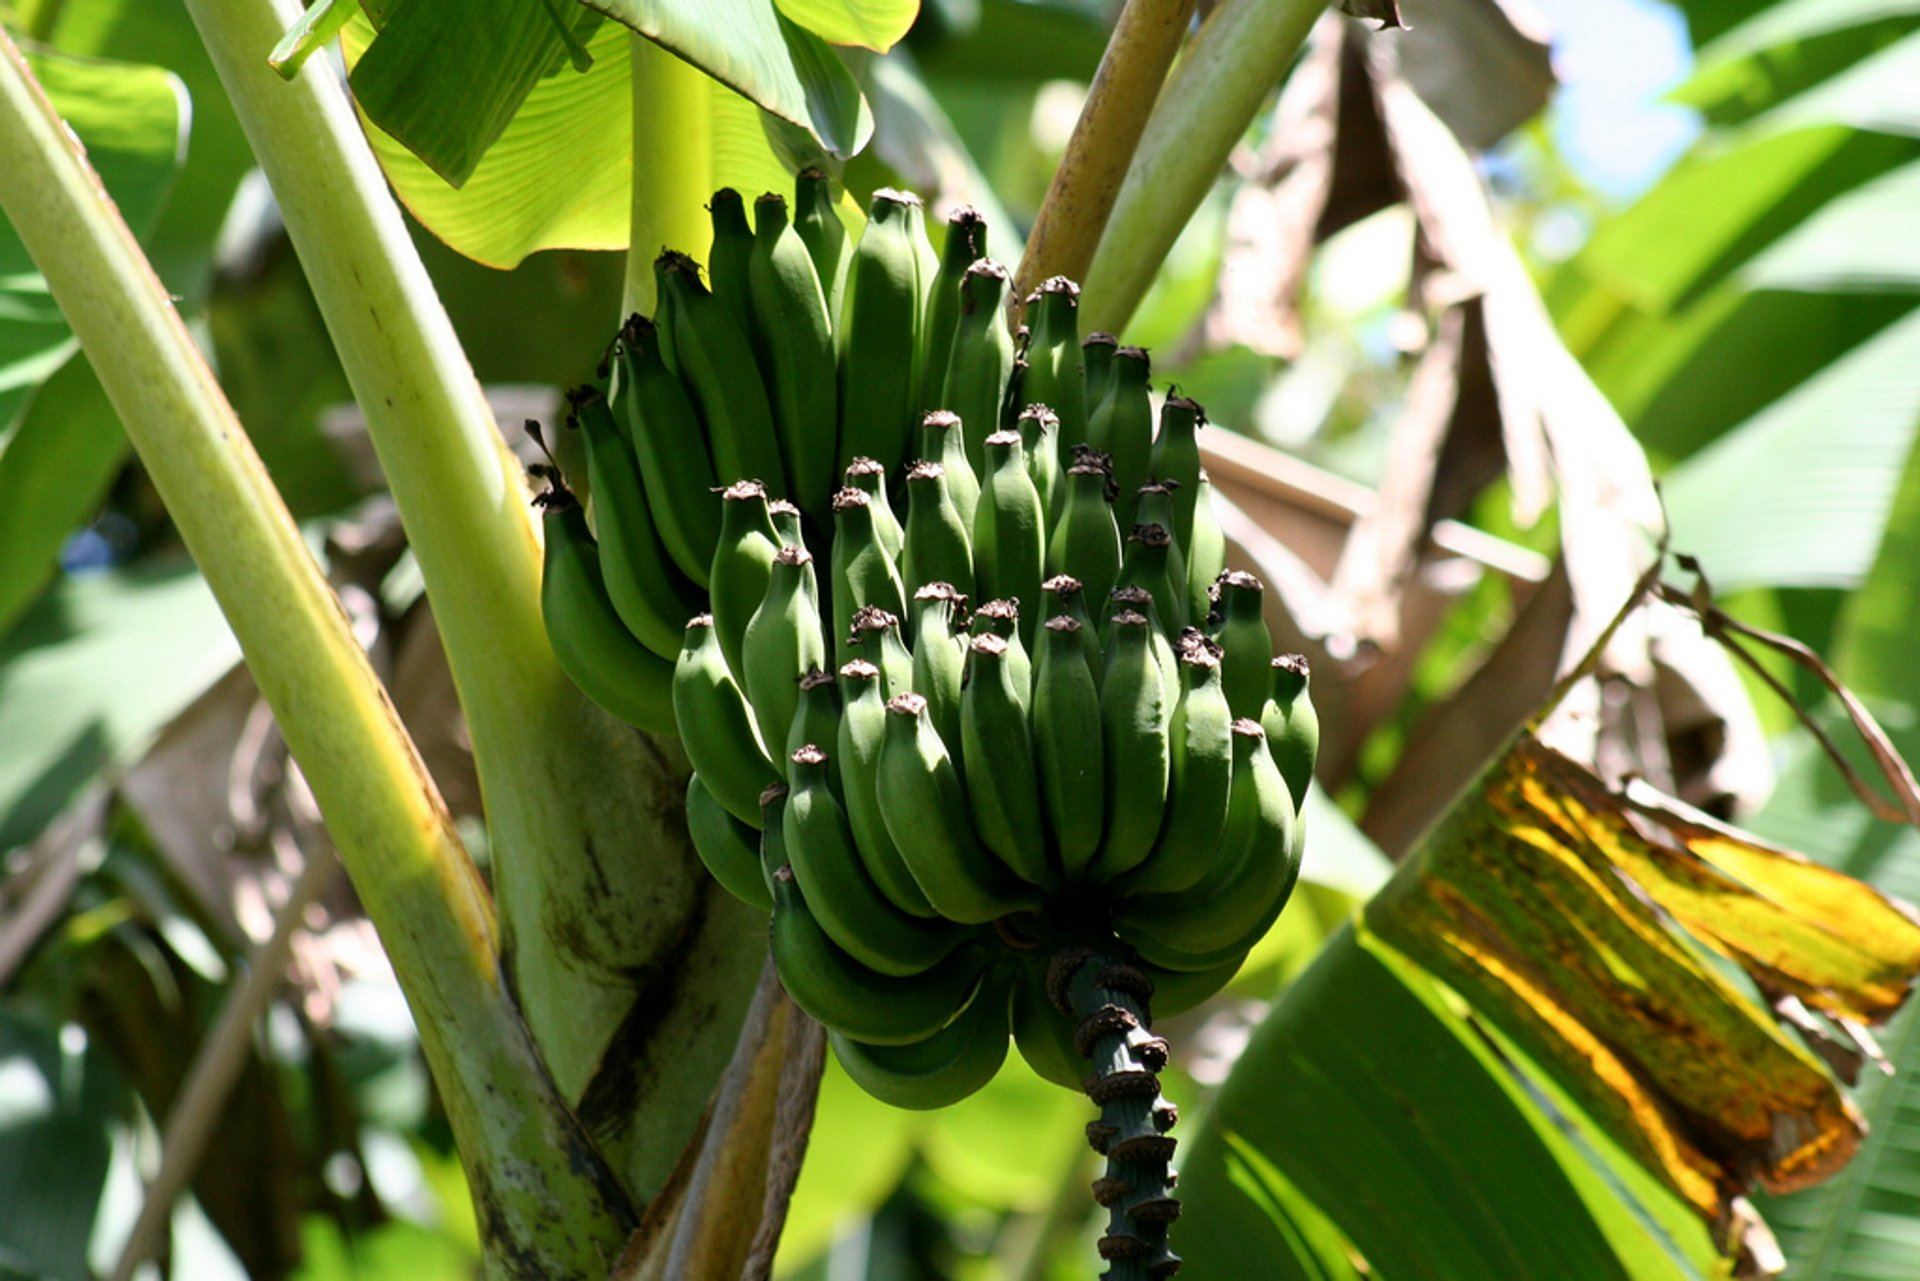 Apple Bananas in Hawaii 2019 - Best Time